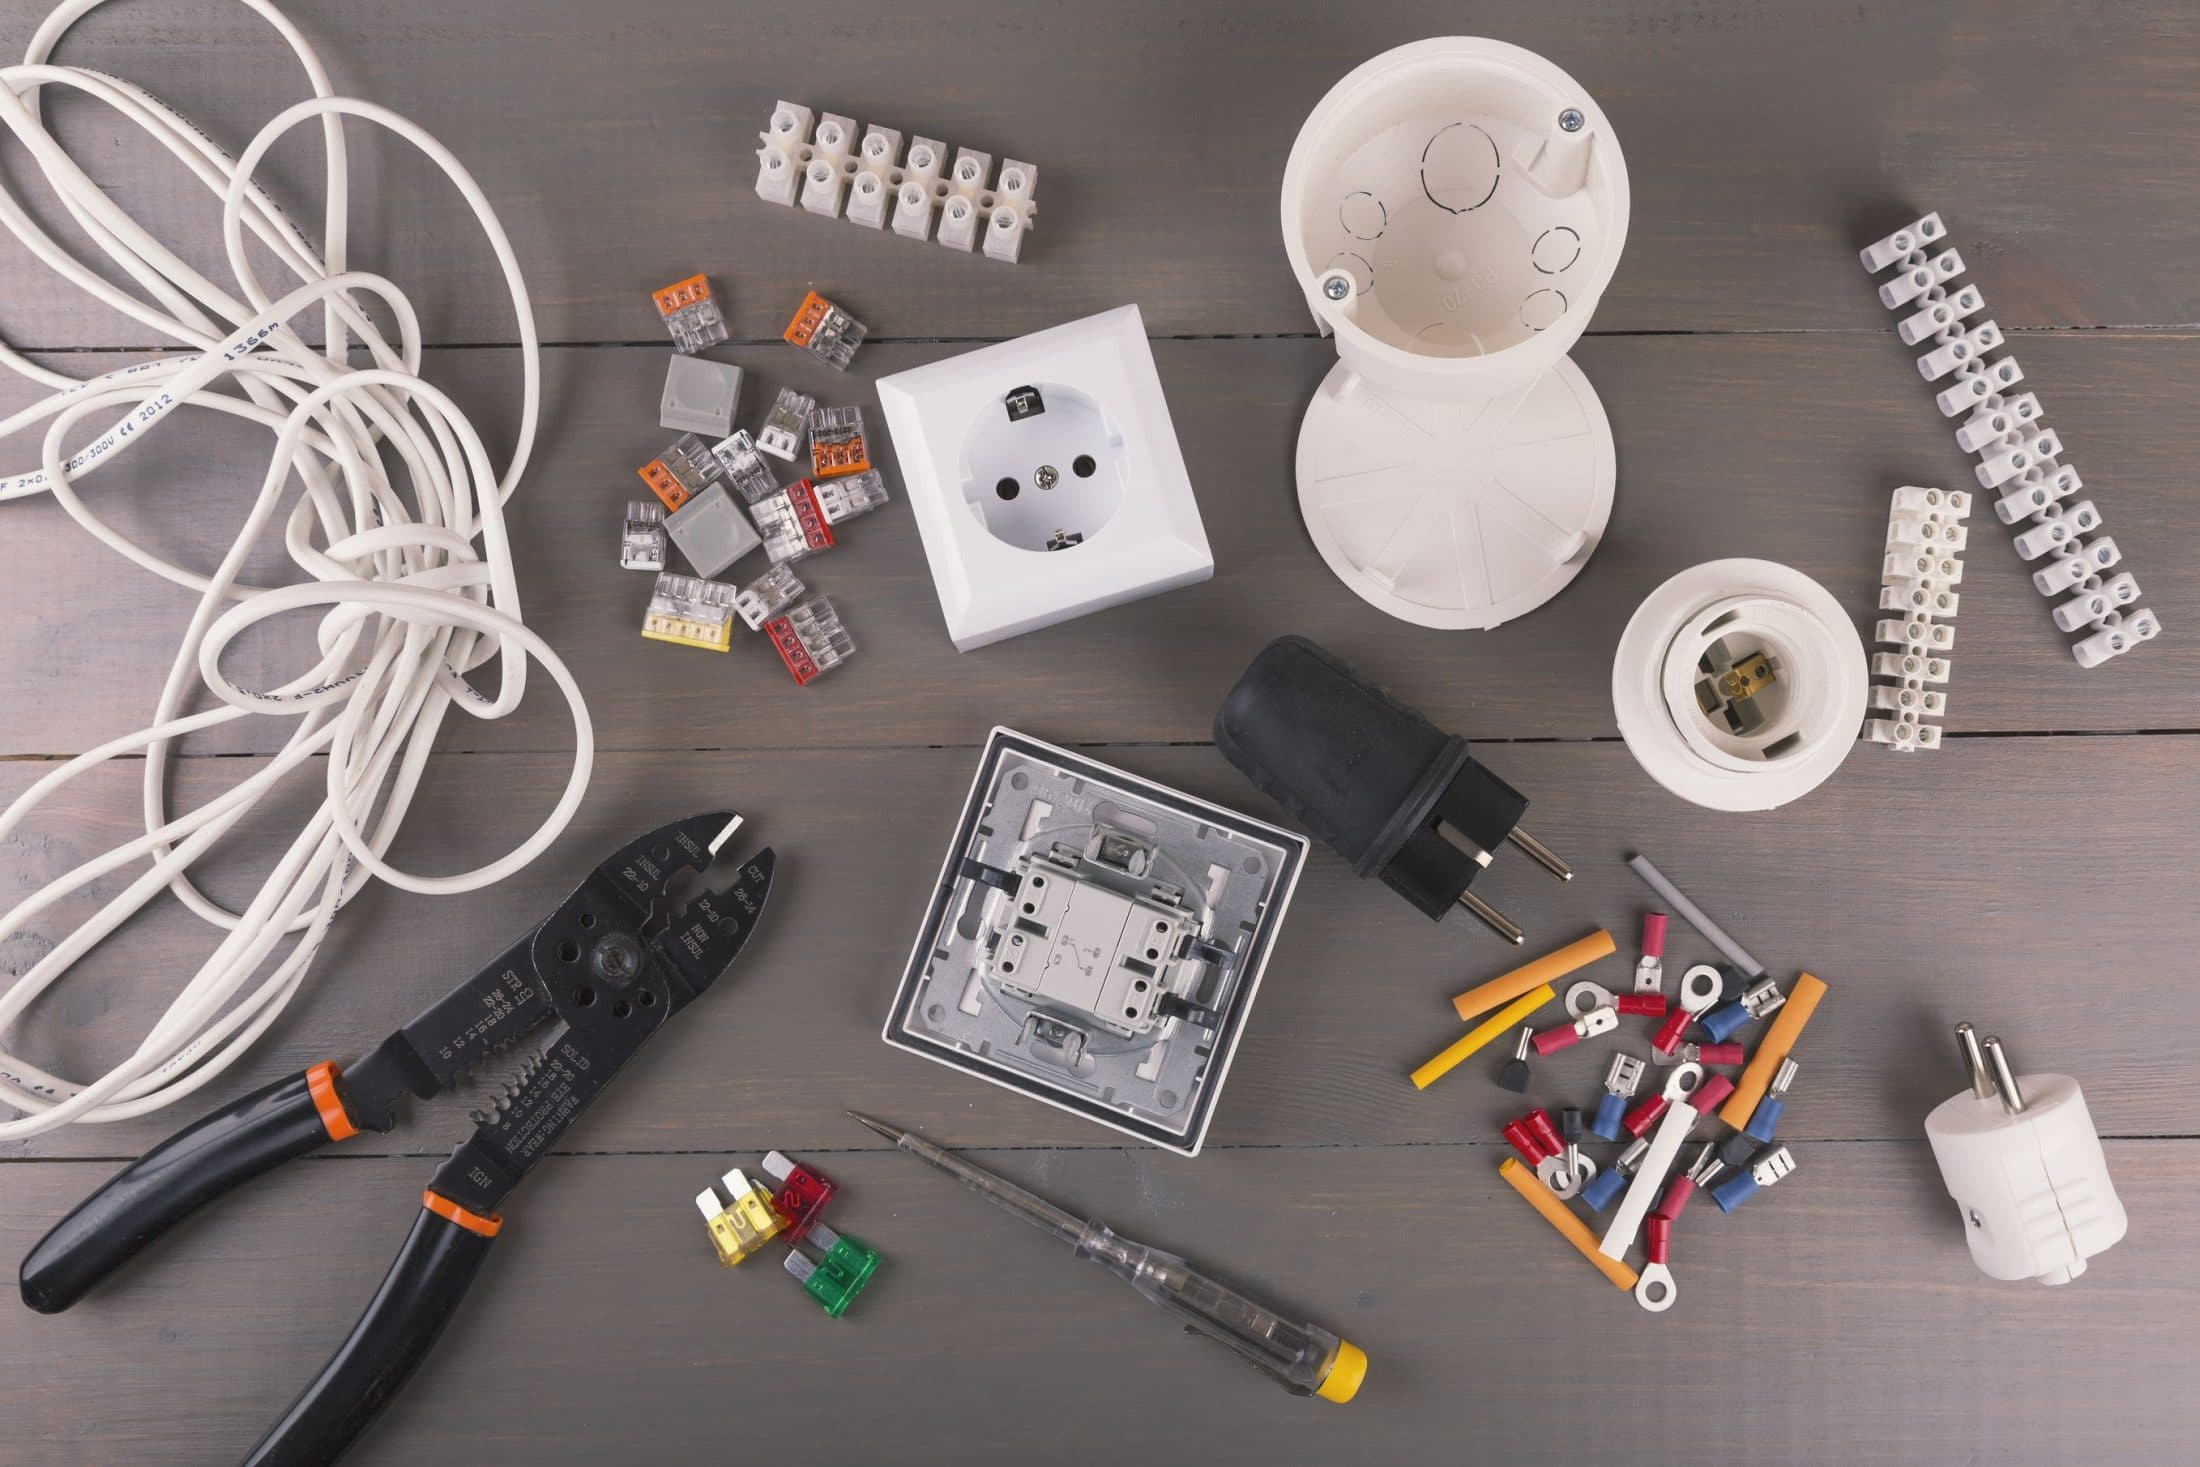 How to Choose a Good Electrician